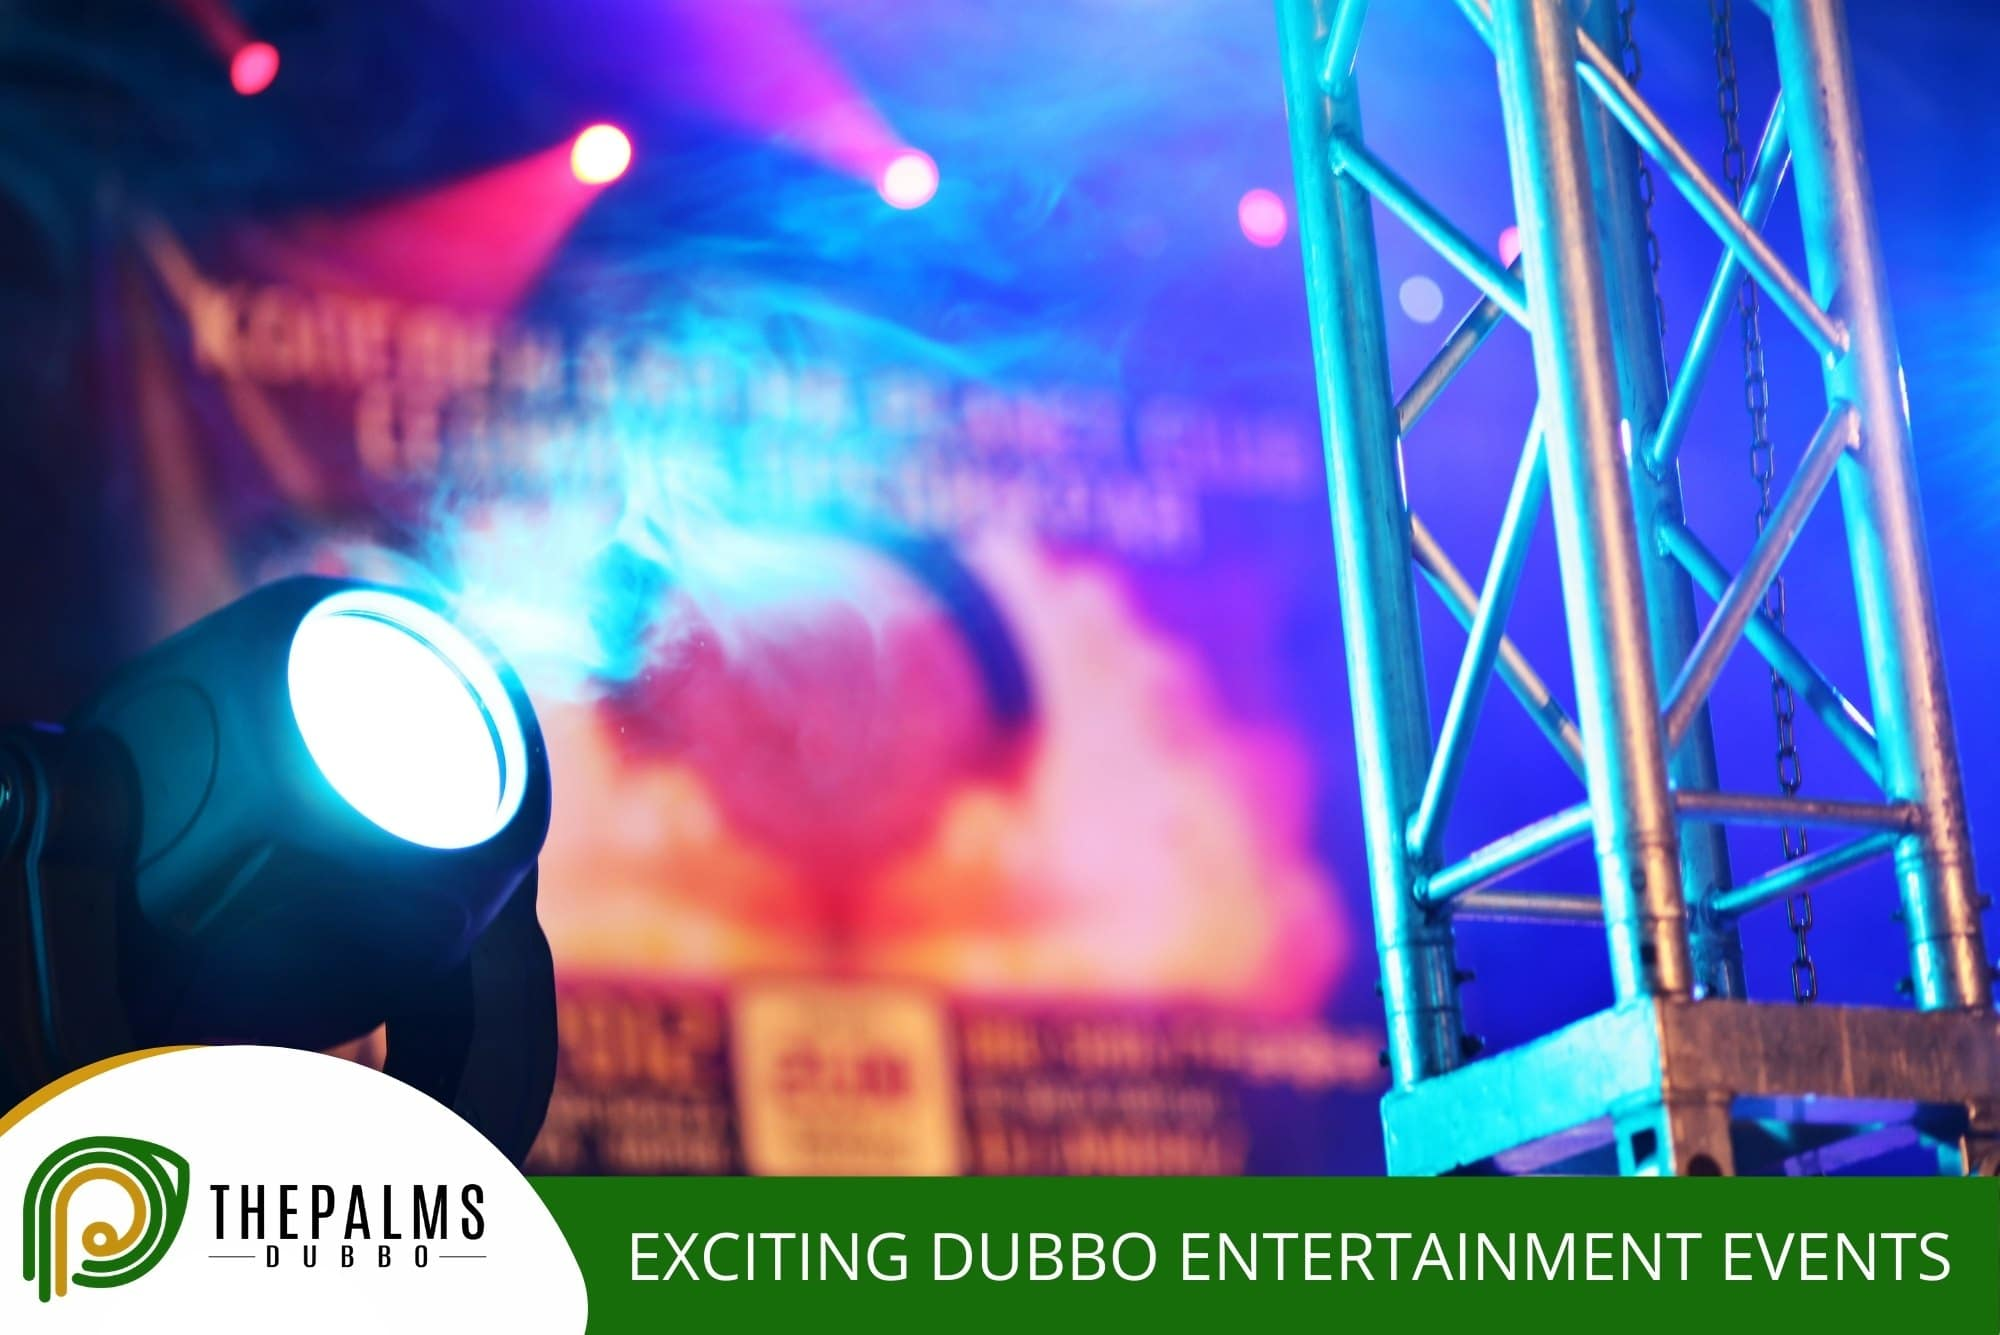 Exciting Dubbo Entertainment Events